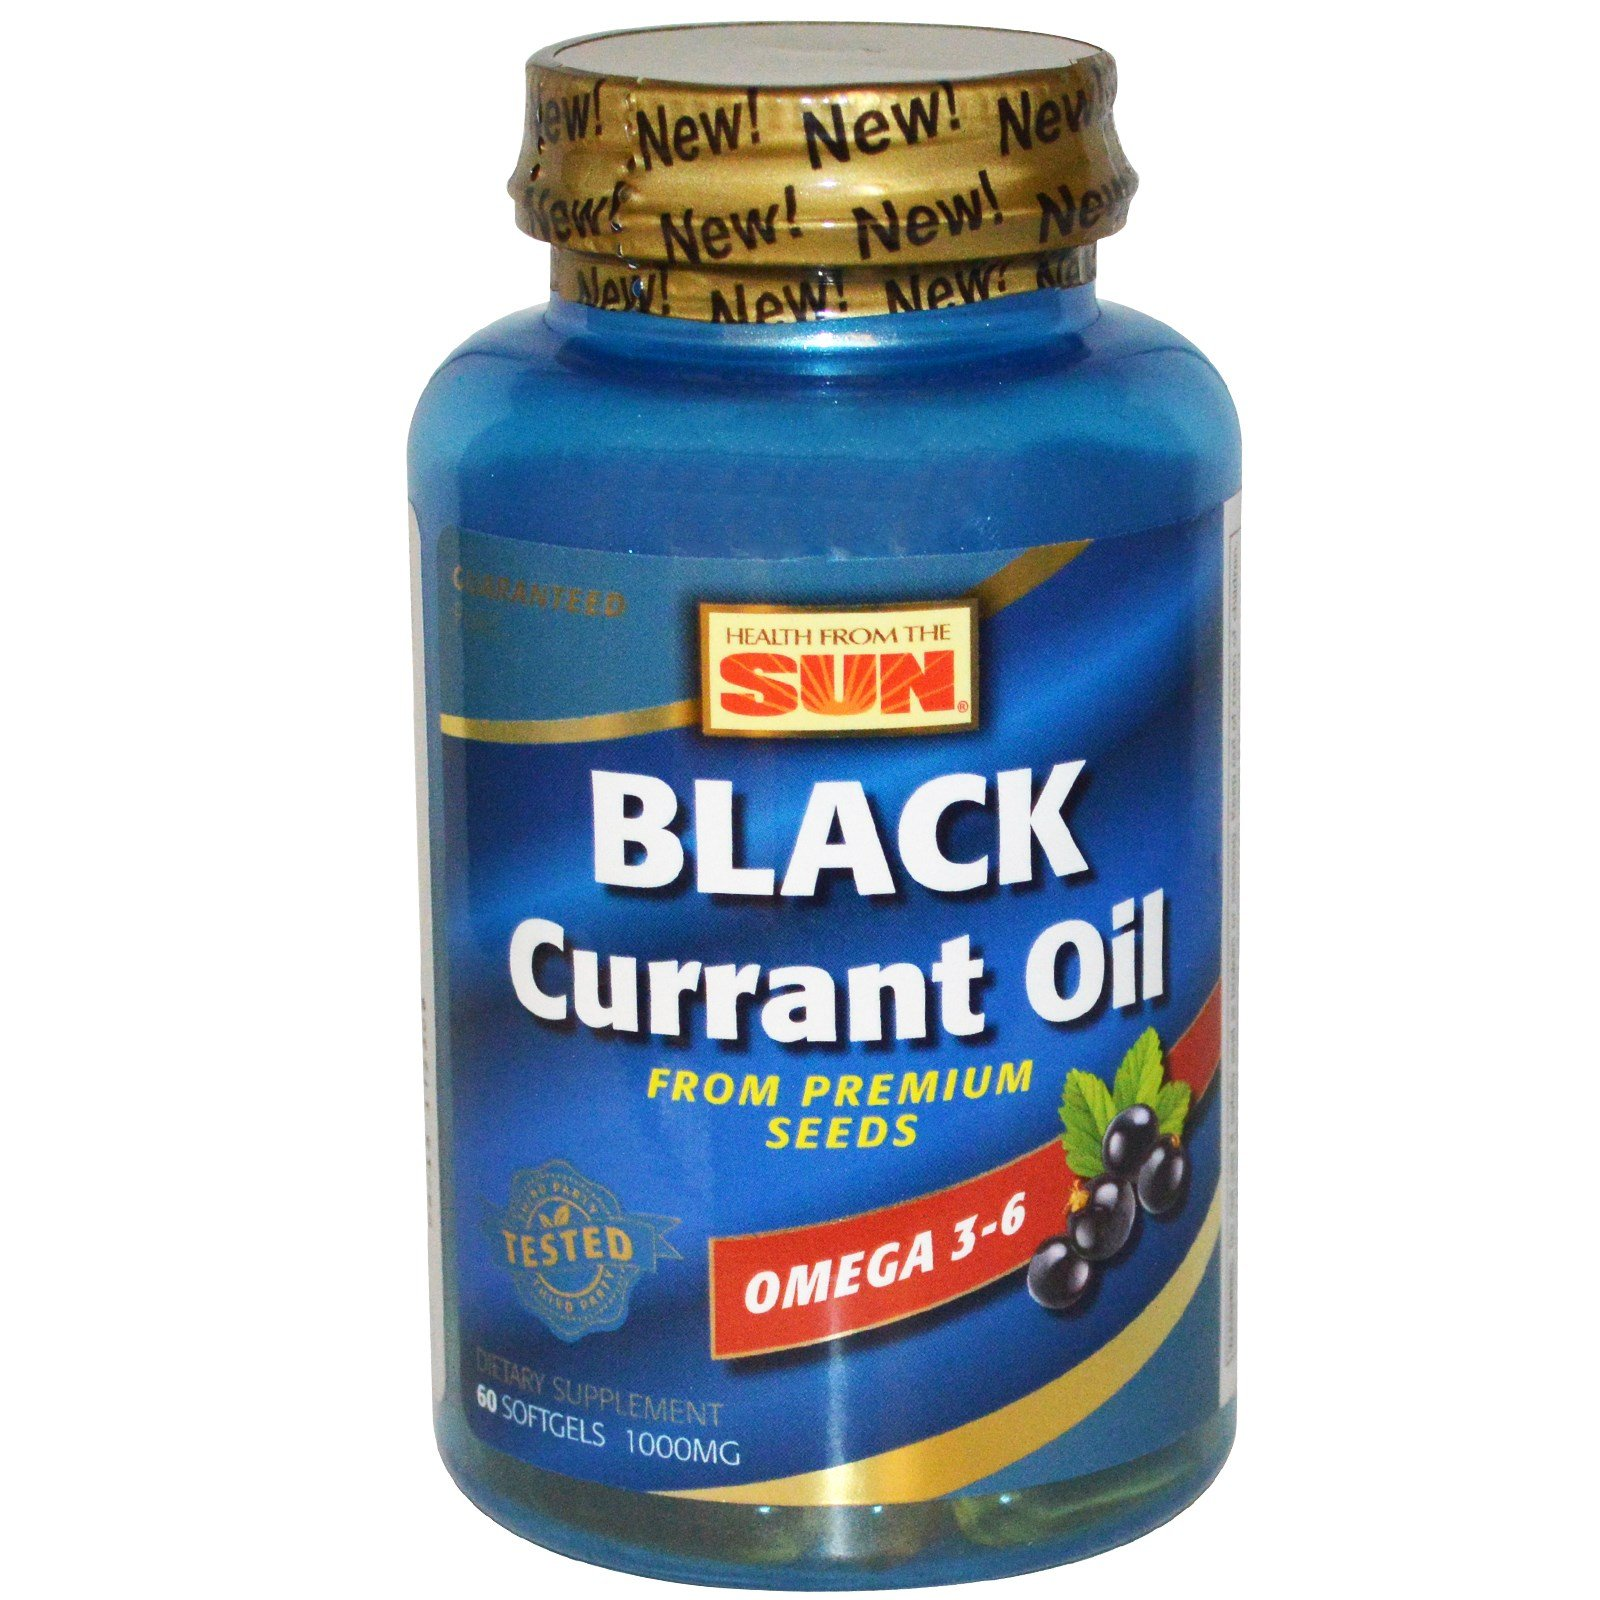 Health From The Sun, Black Currant Oil, 1,000 mg, 60 Softgels - 2pc